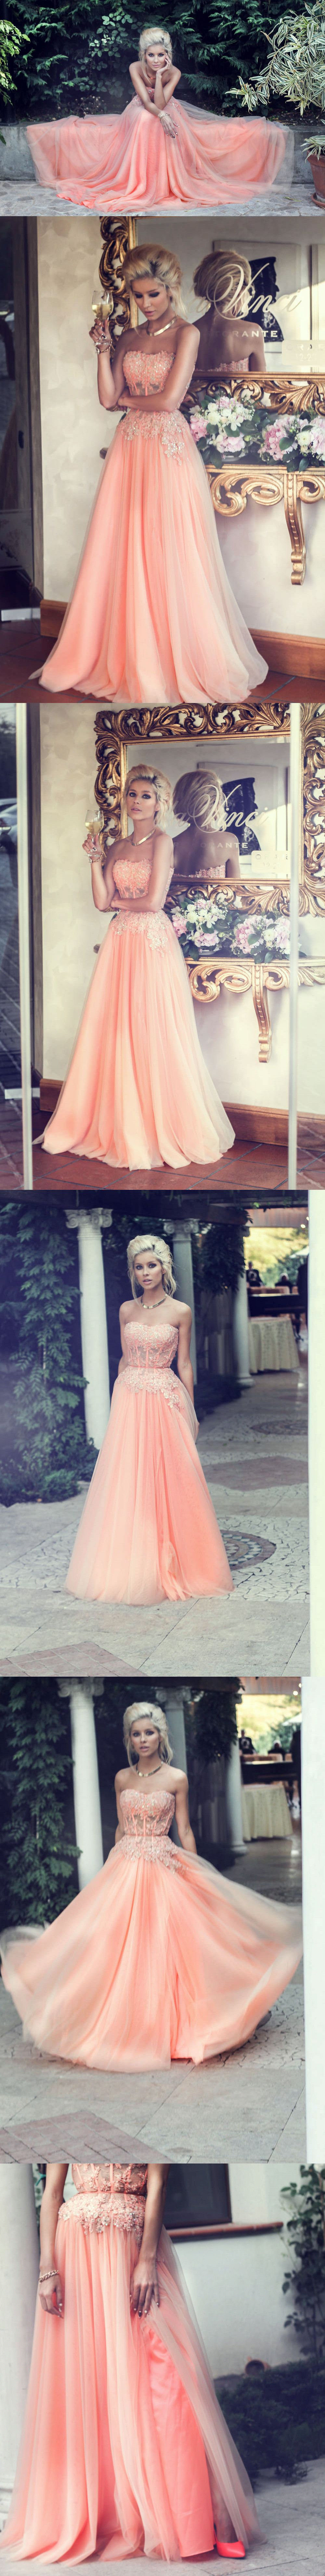 Peach Dresses for Prom Night